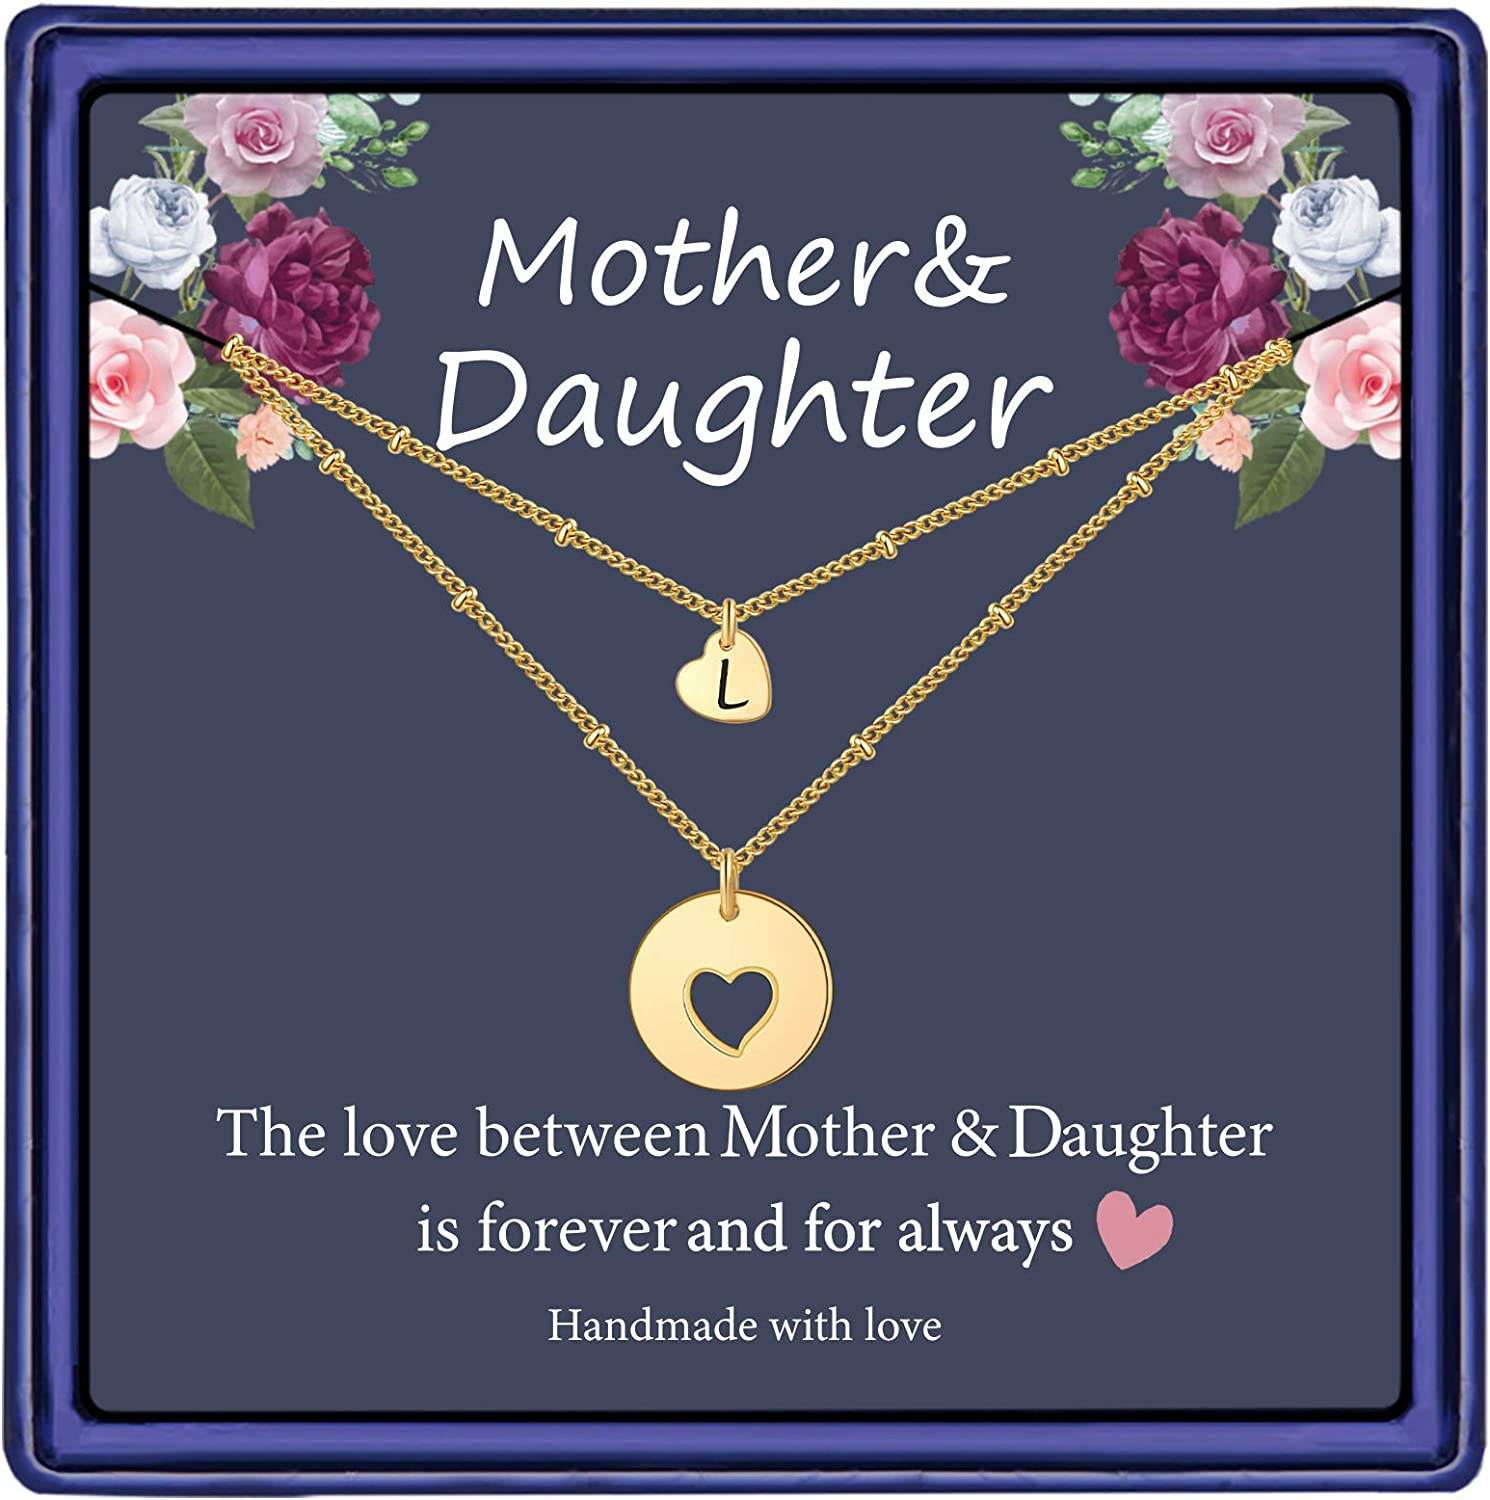 Iefil Mother Daughter Necklace for Mom, 14k Gold Filled Layered Necklace Heart Initial Necklace Gifts for Mom from Daughter Gifts for Mother's Day Christmas Thanking Giving Day